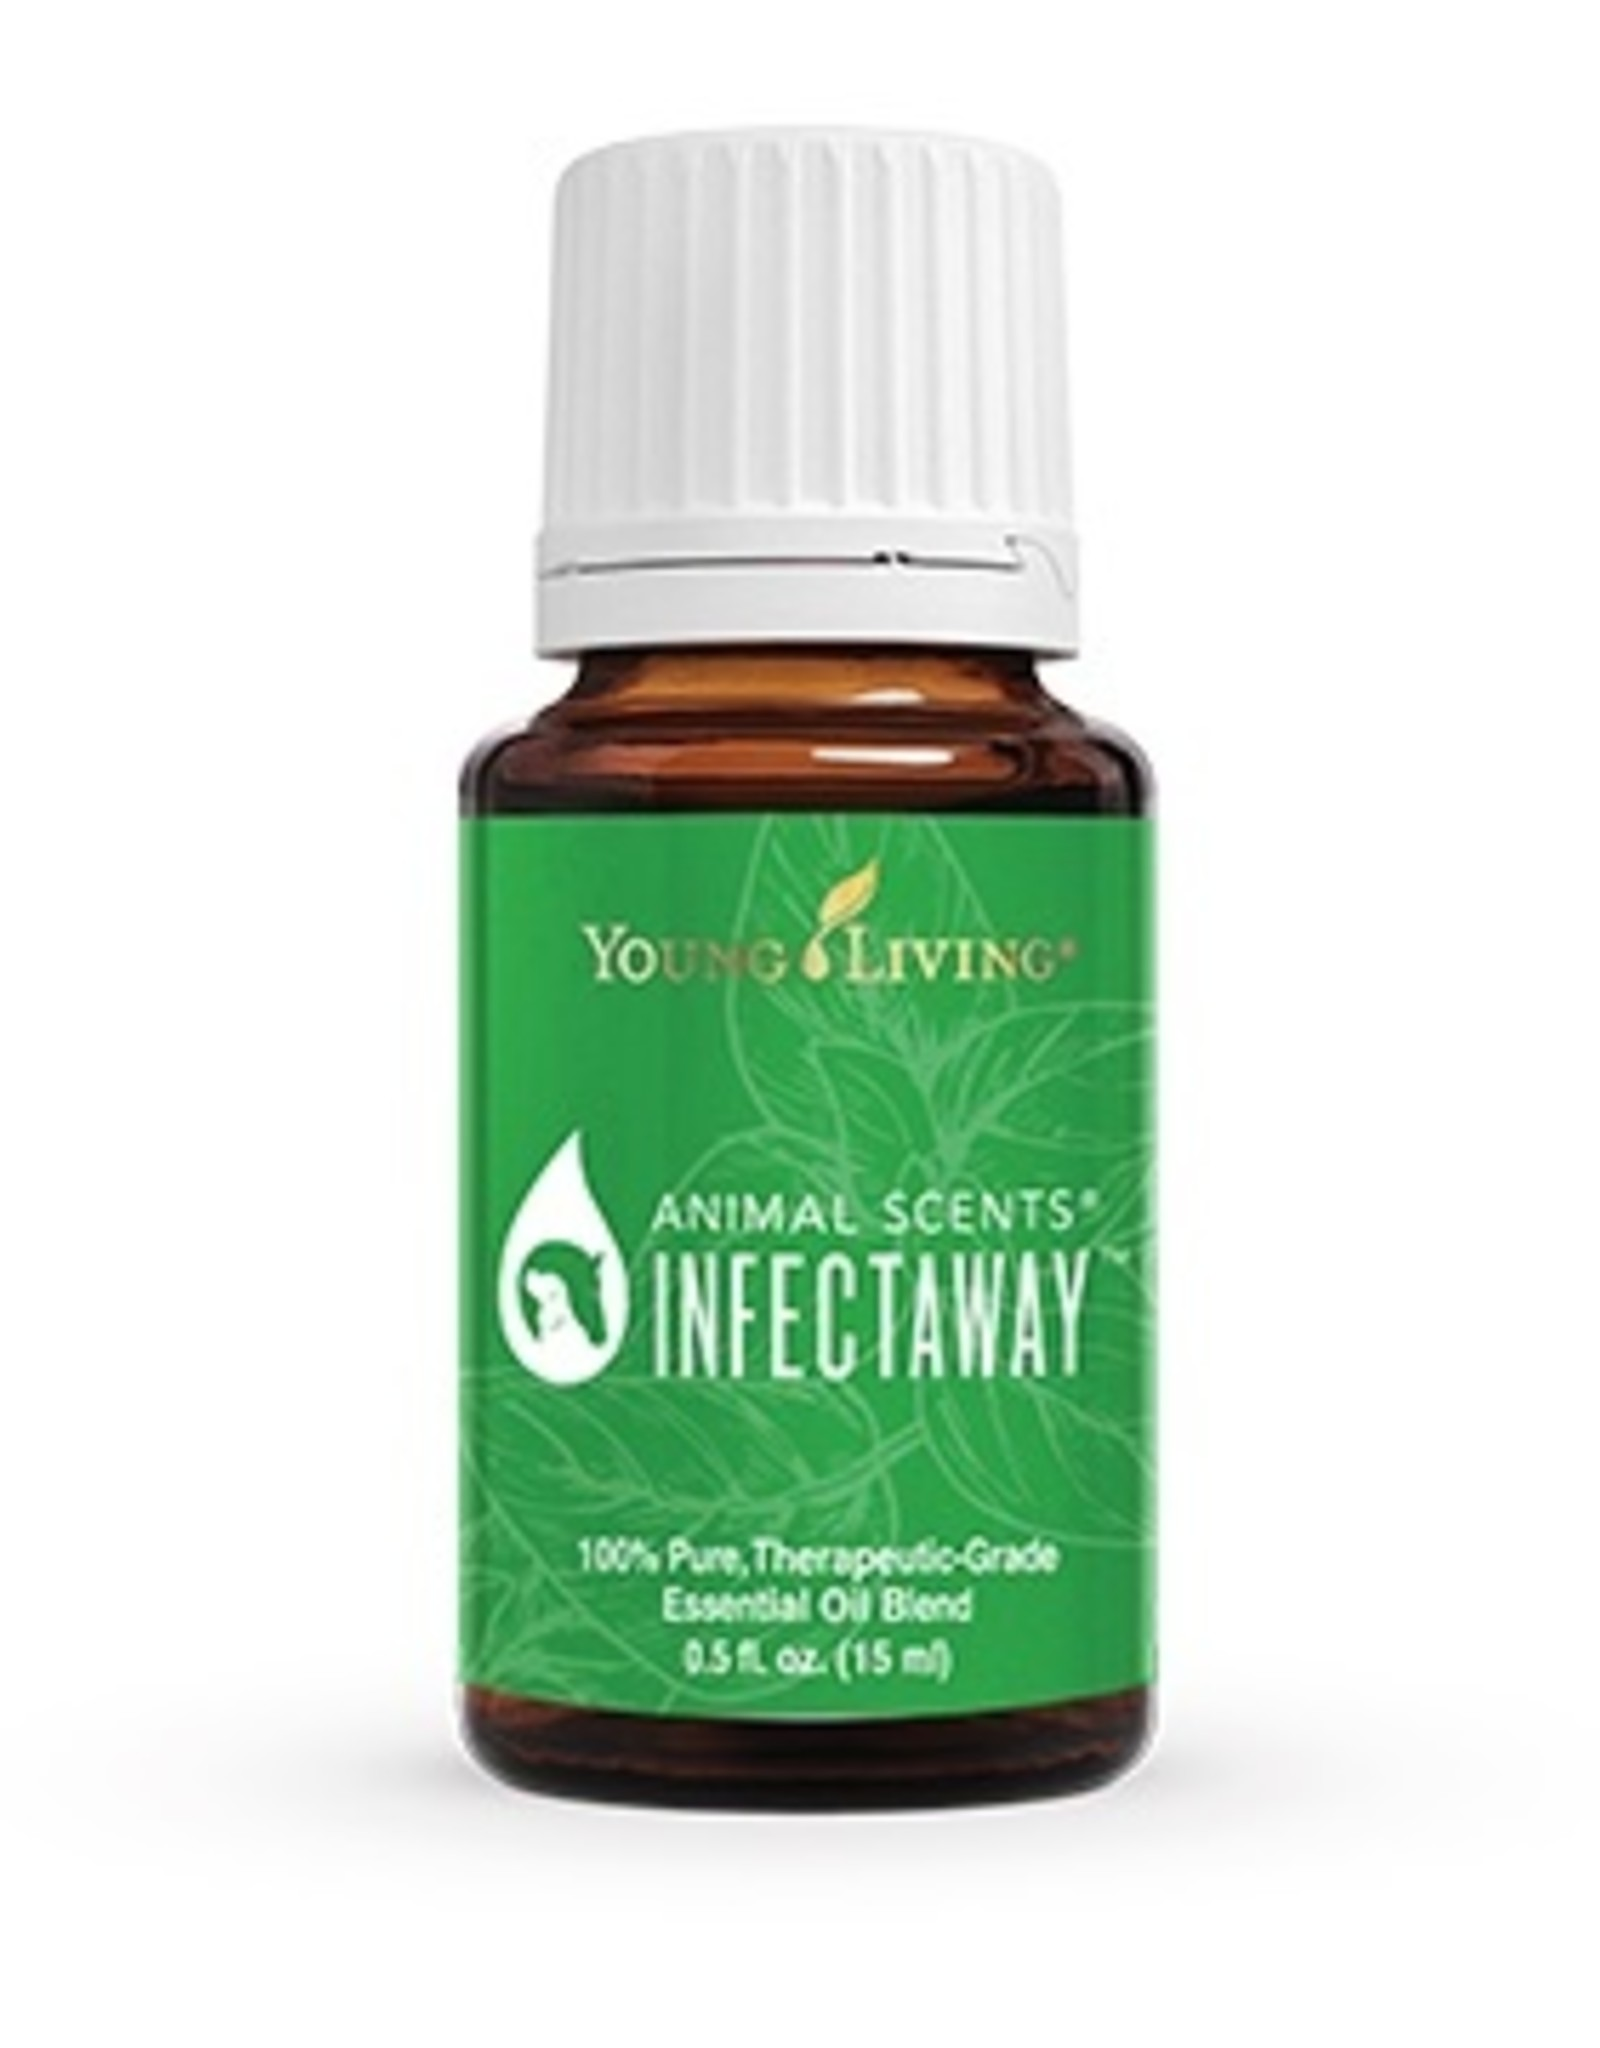 Young Living Animal Scents Infectaway - 15mL